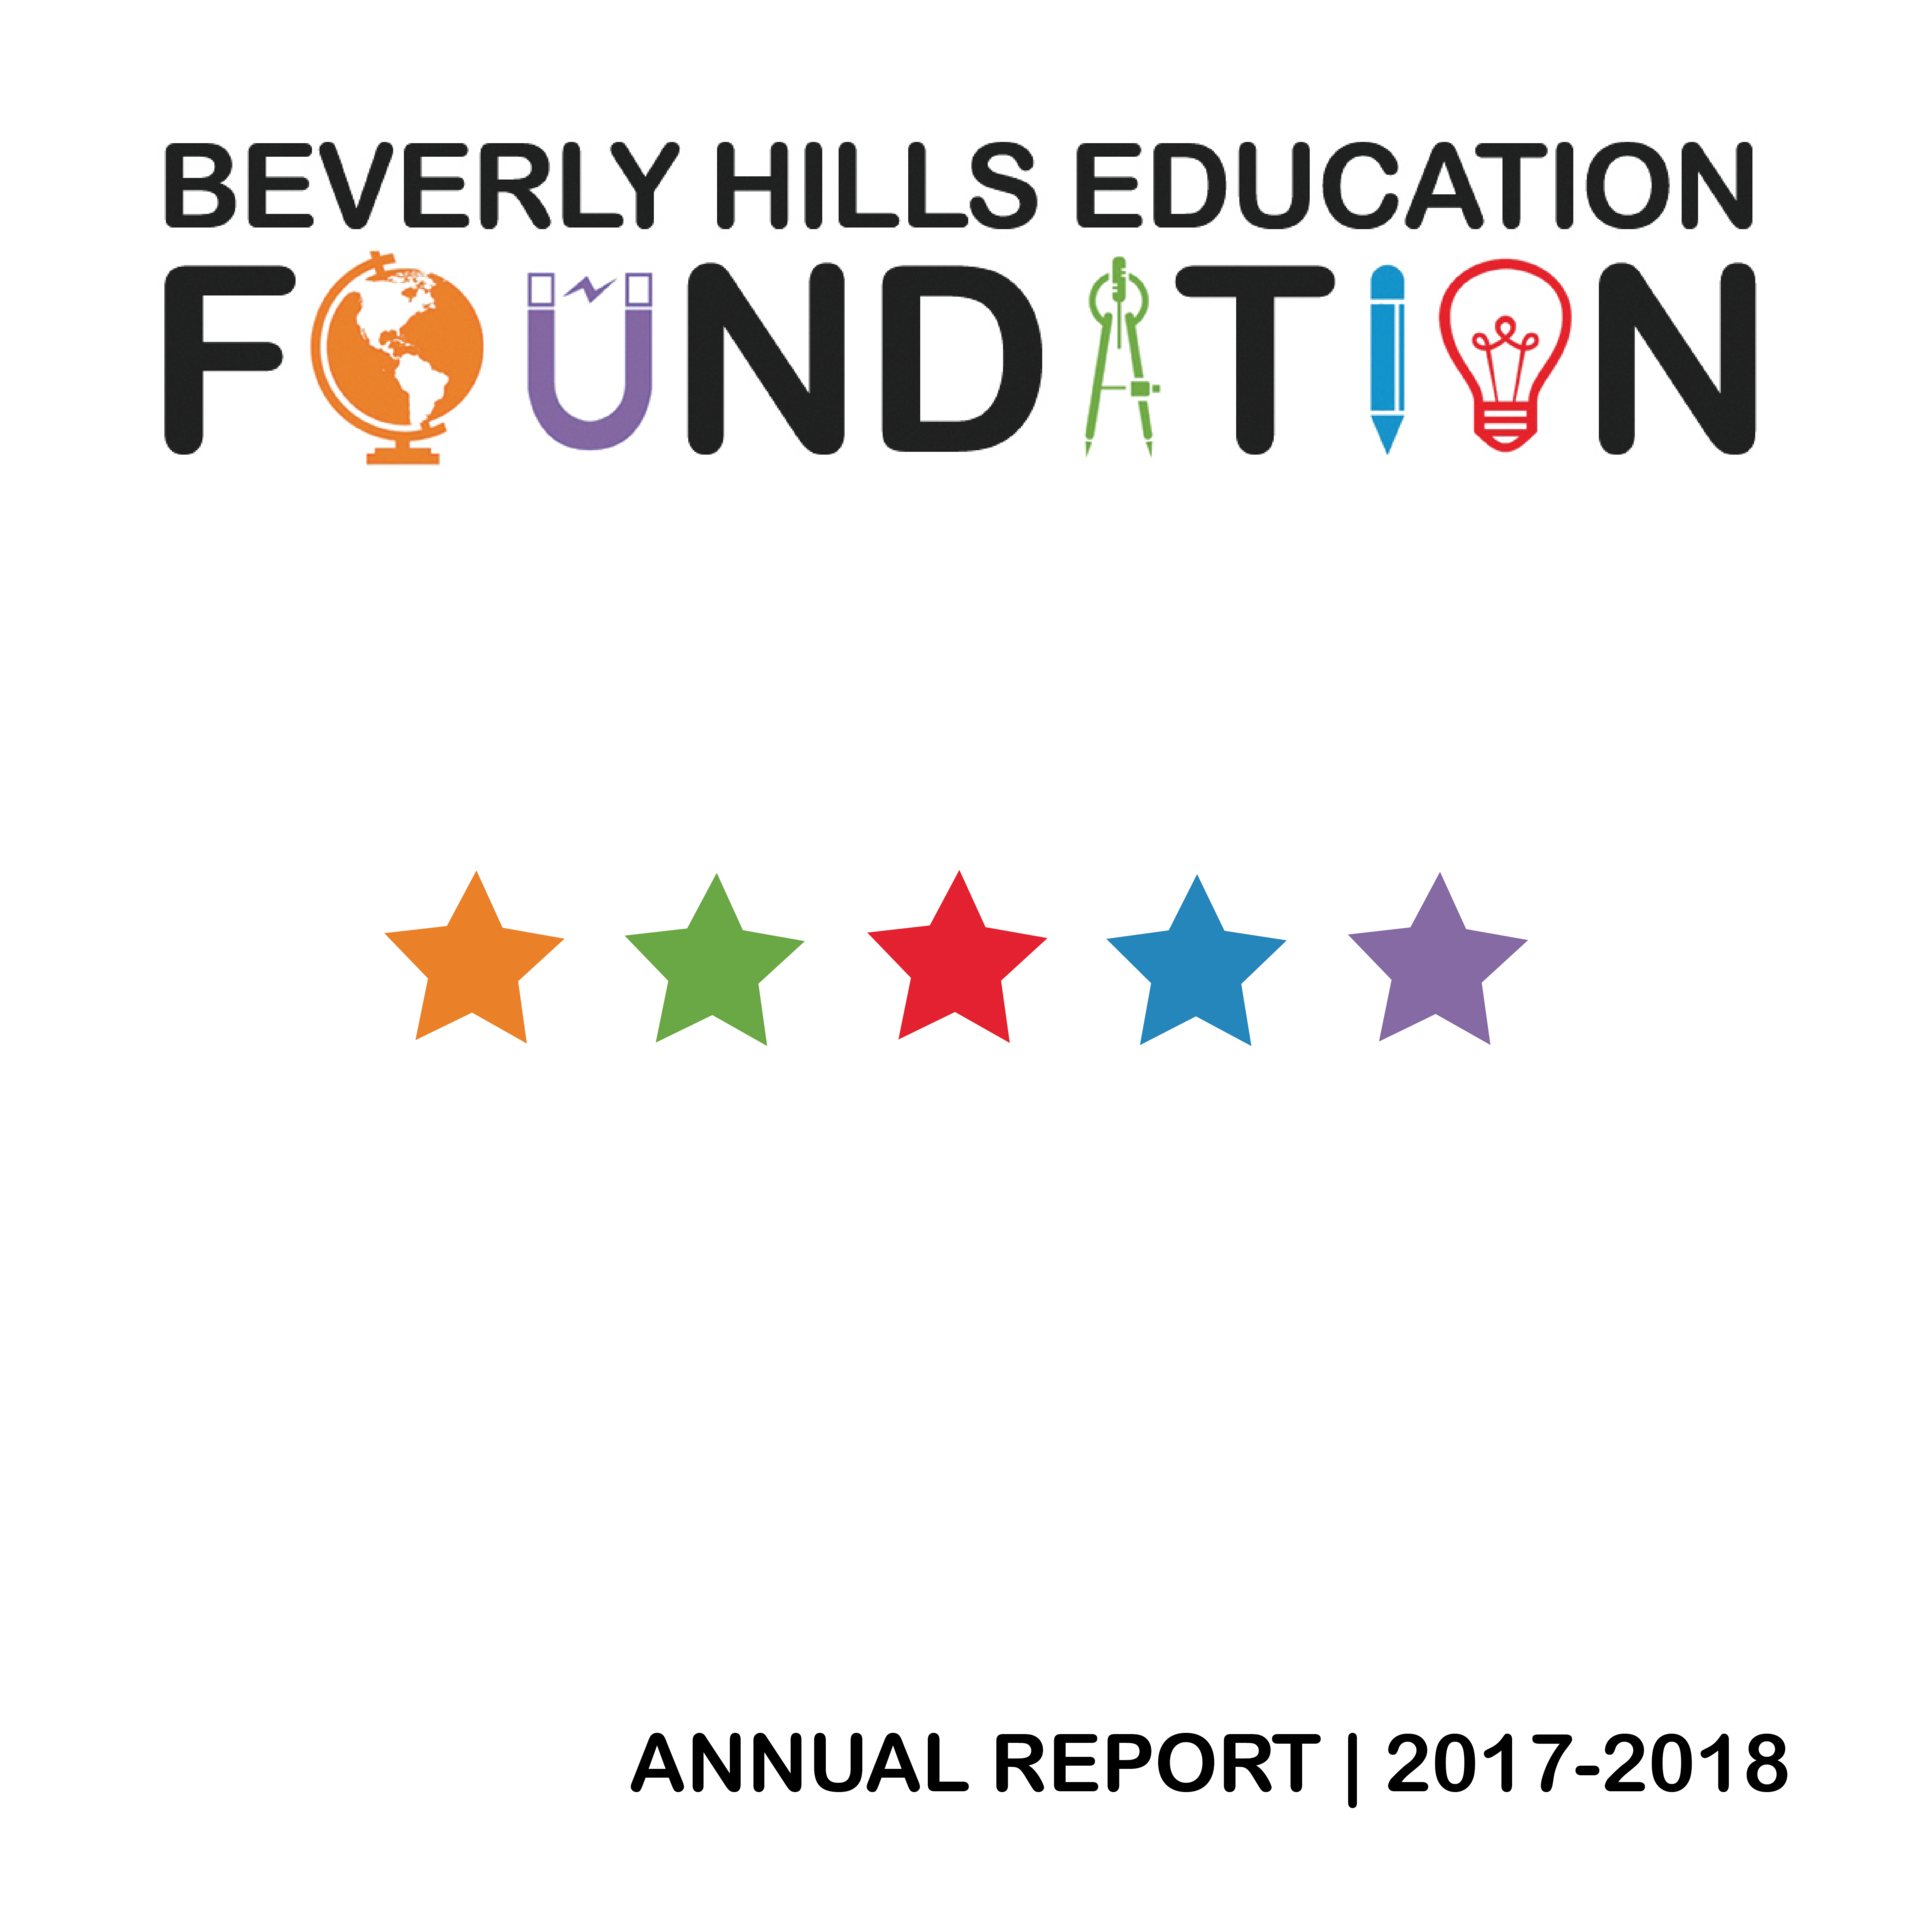 cover for 2017-2018 annual report